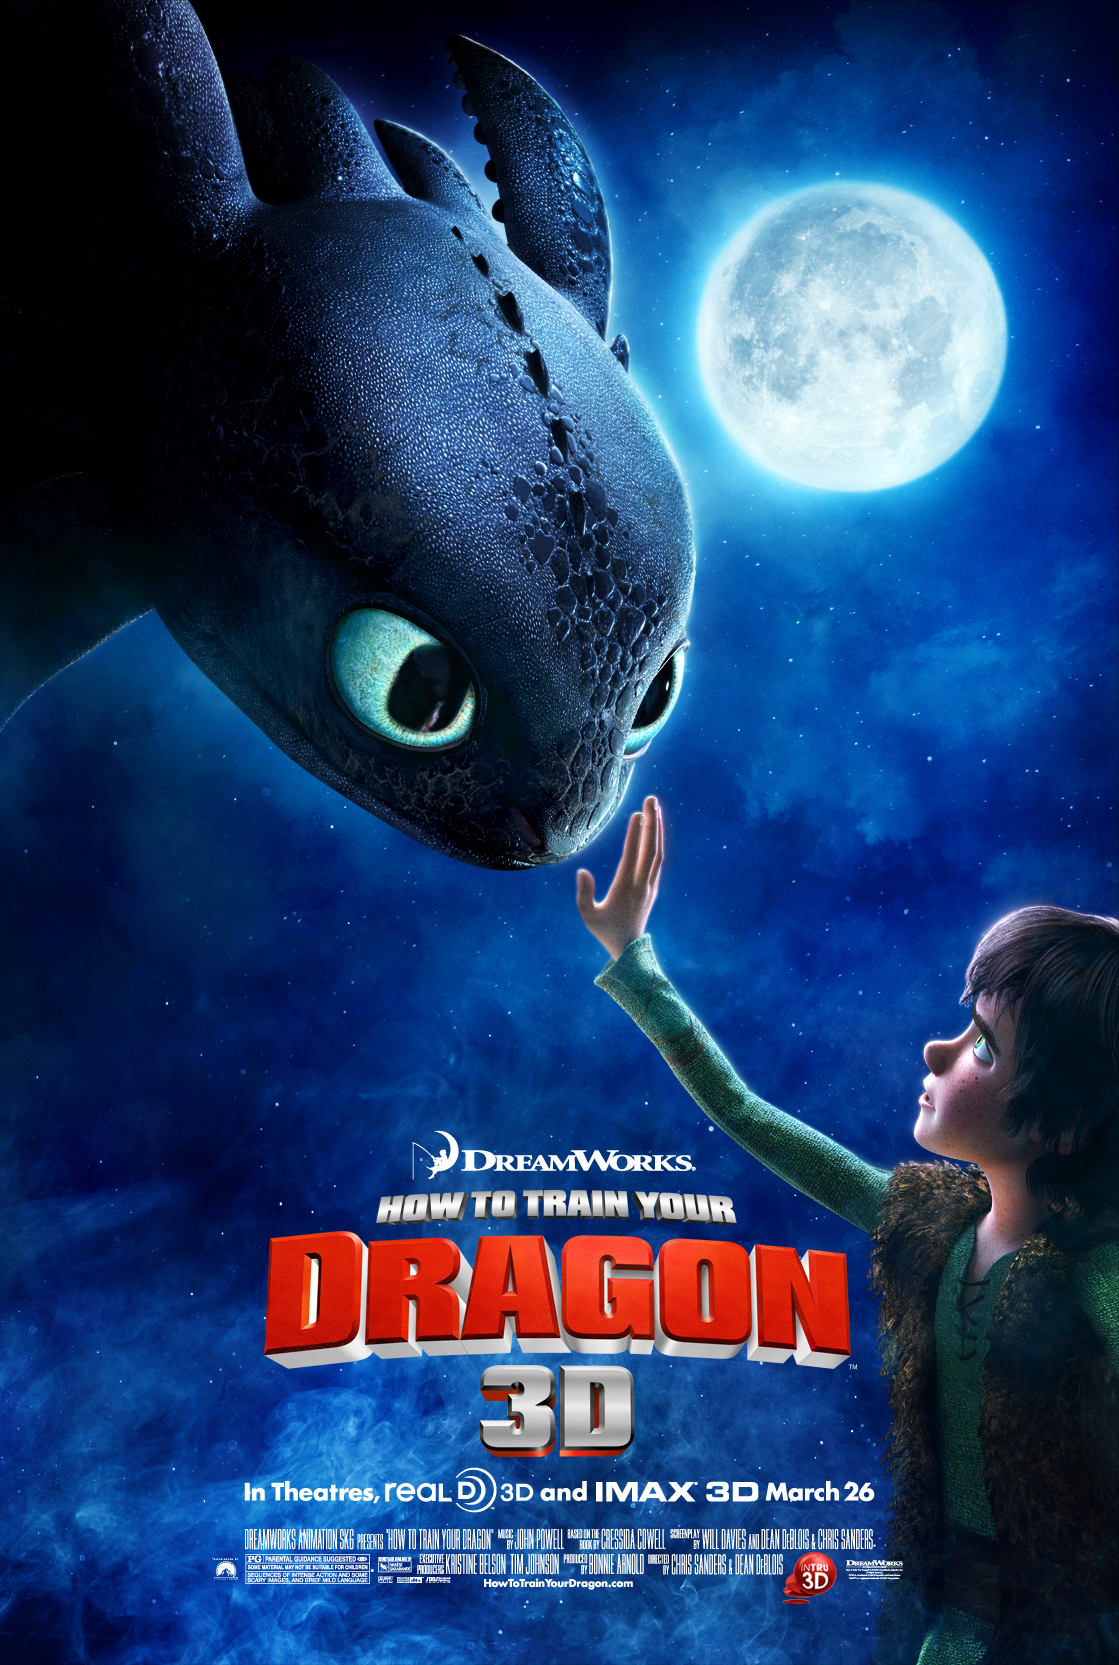 How to Train Your Dragon | Dreamworks Animation Wiki